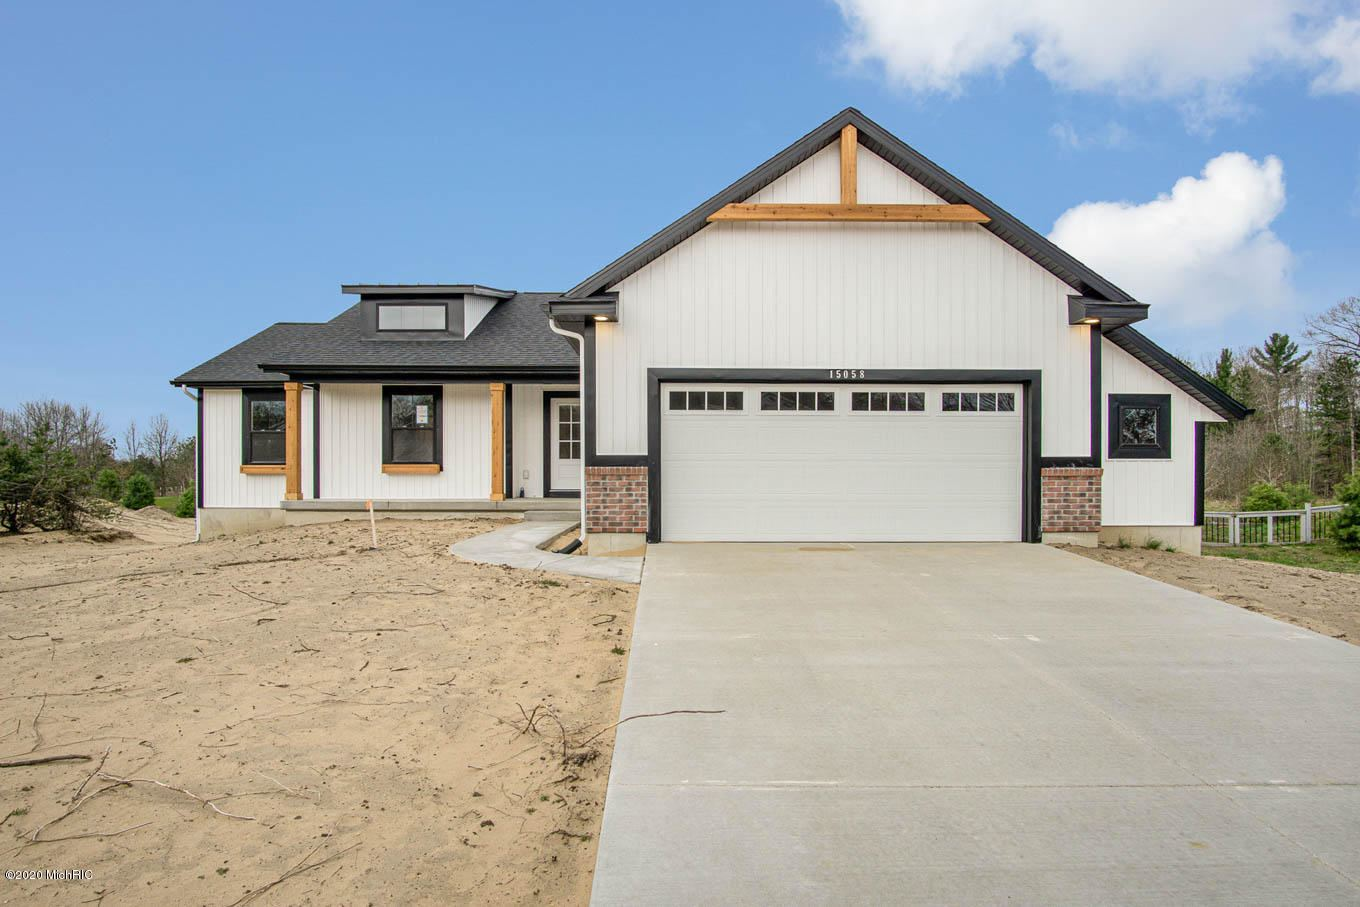 Photo of 15058 Copperwood Drive, Grand Haven, MI 49417 (MLS # 19057866)